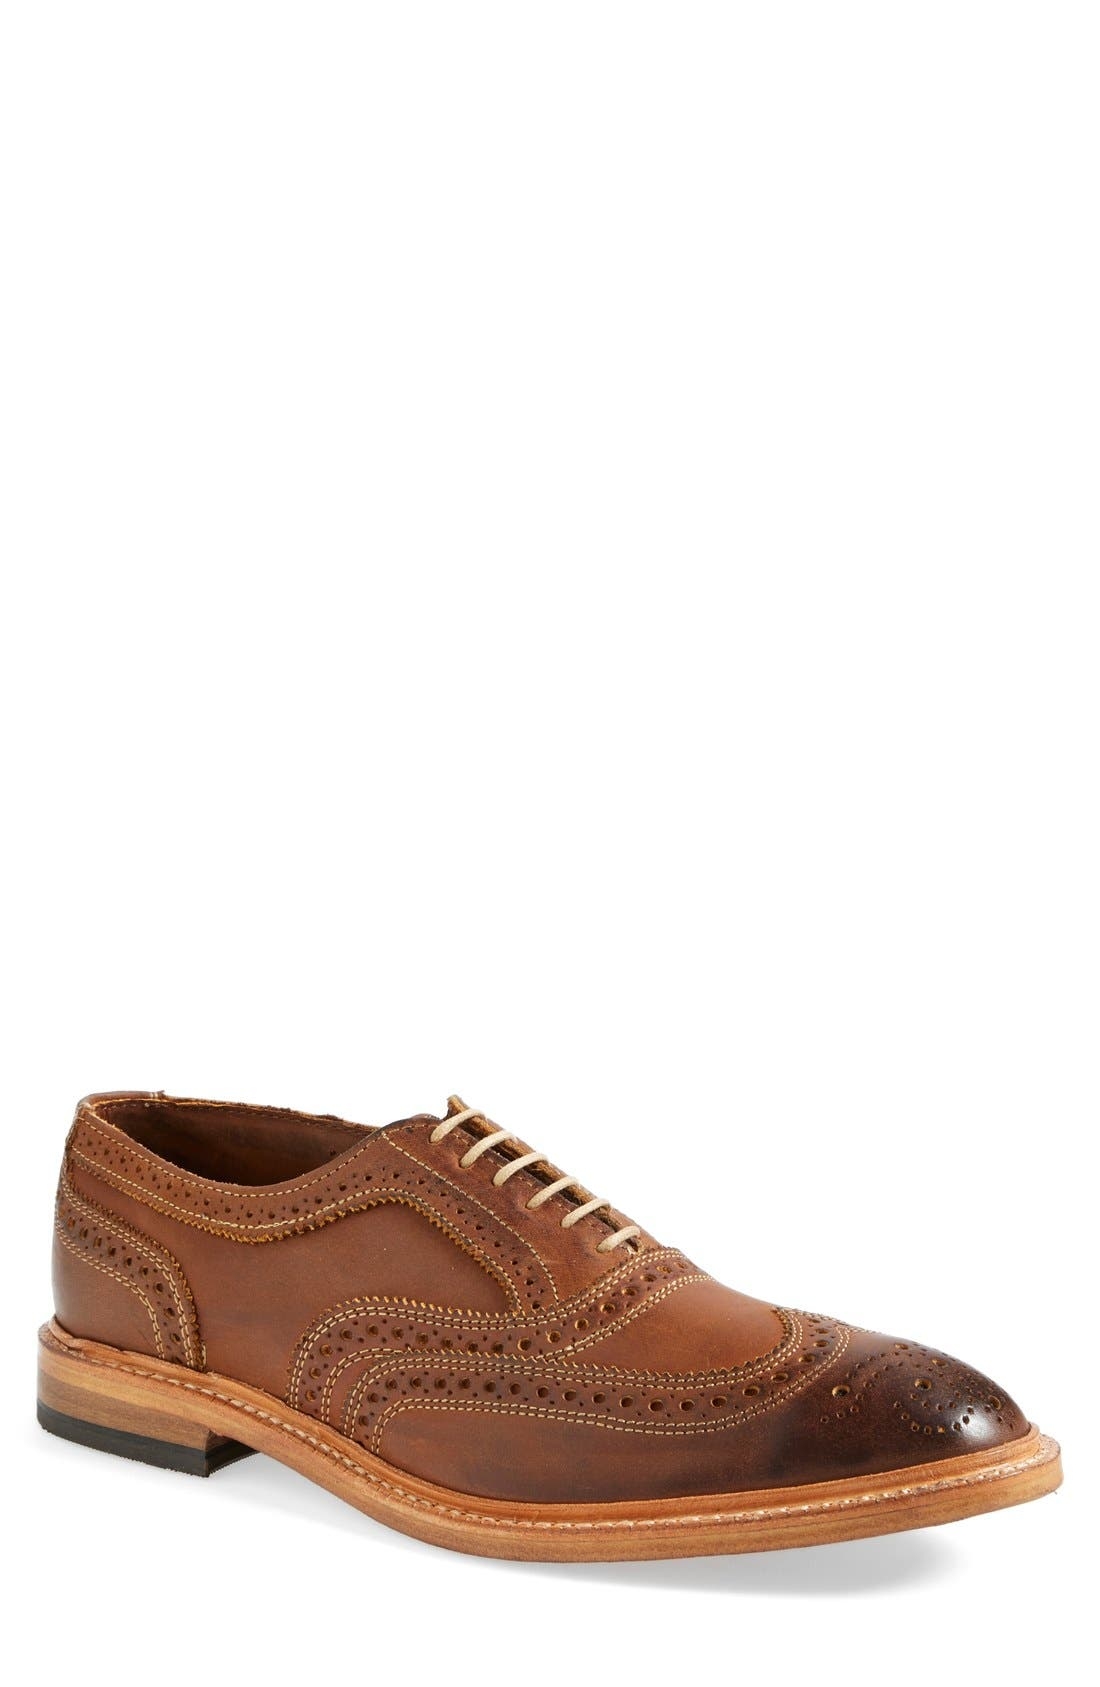 Main Image - Allen Edmonds 'Neumok' Wingtip (Men) (Nordstrom Exclusive)